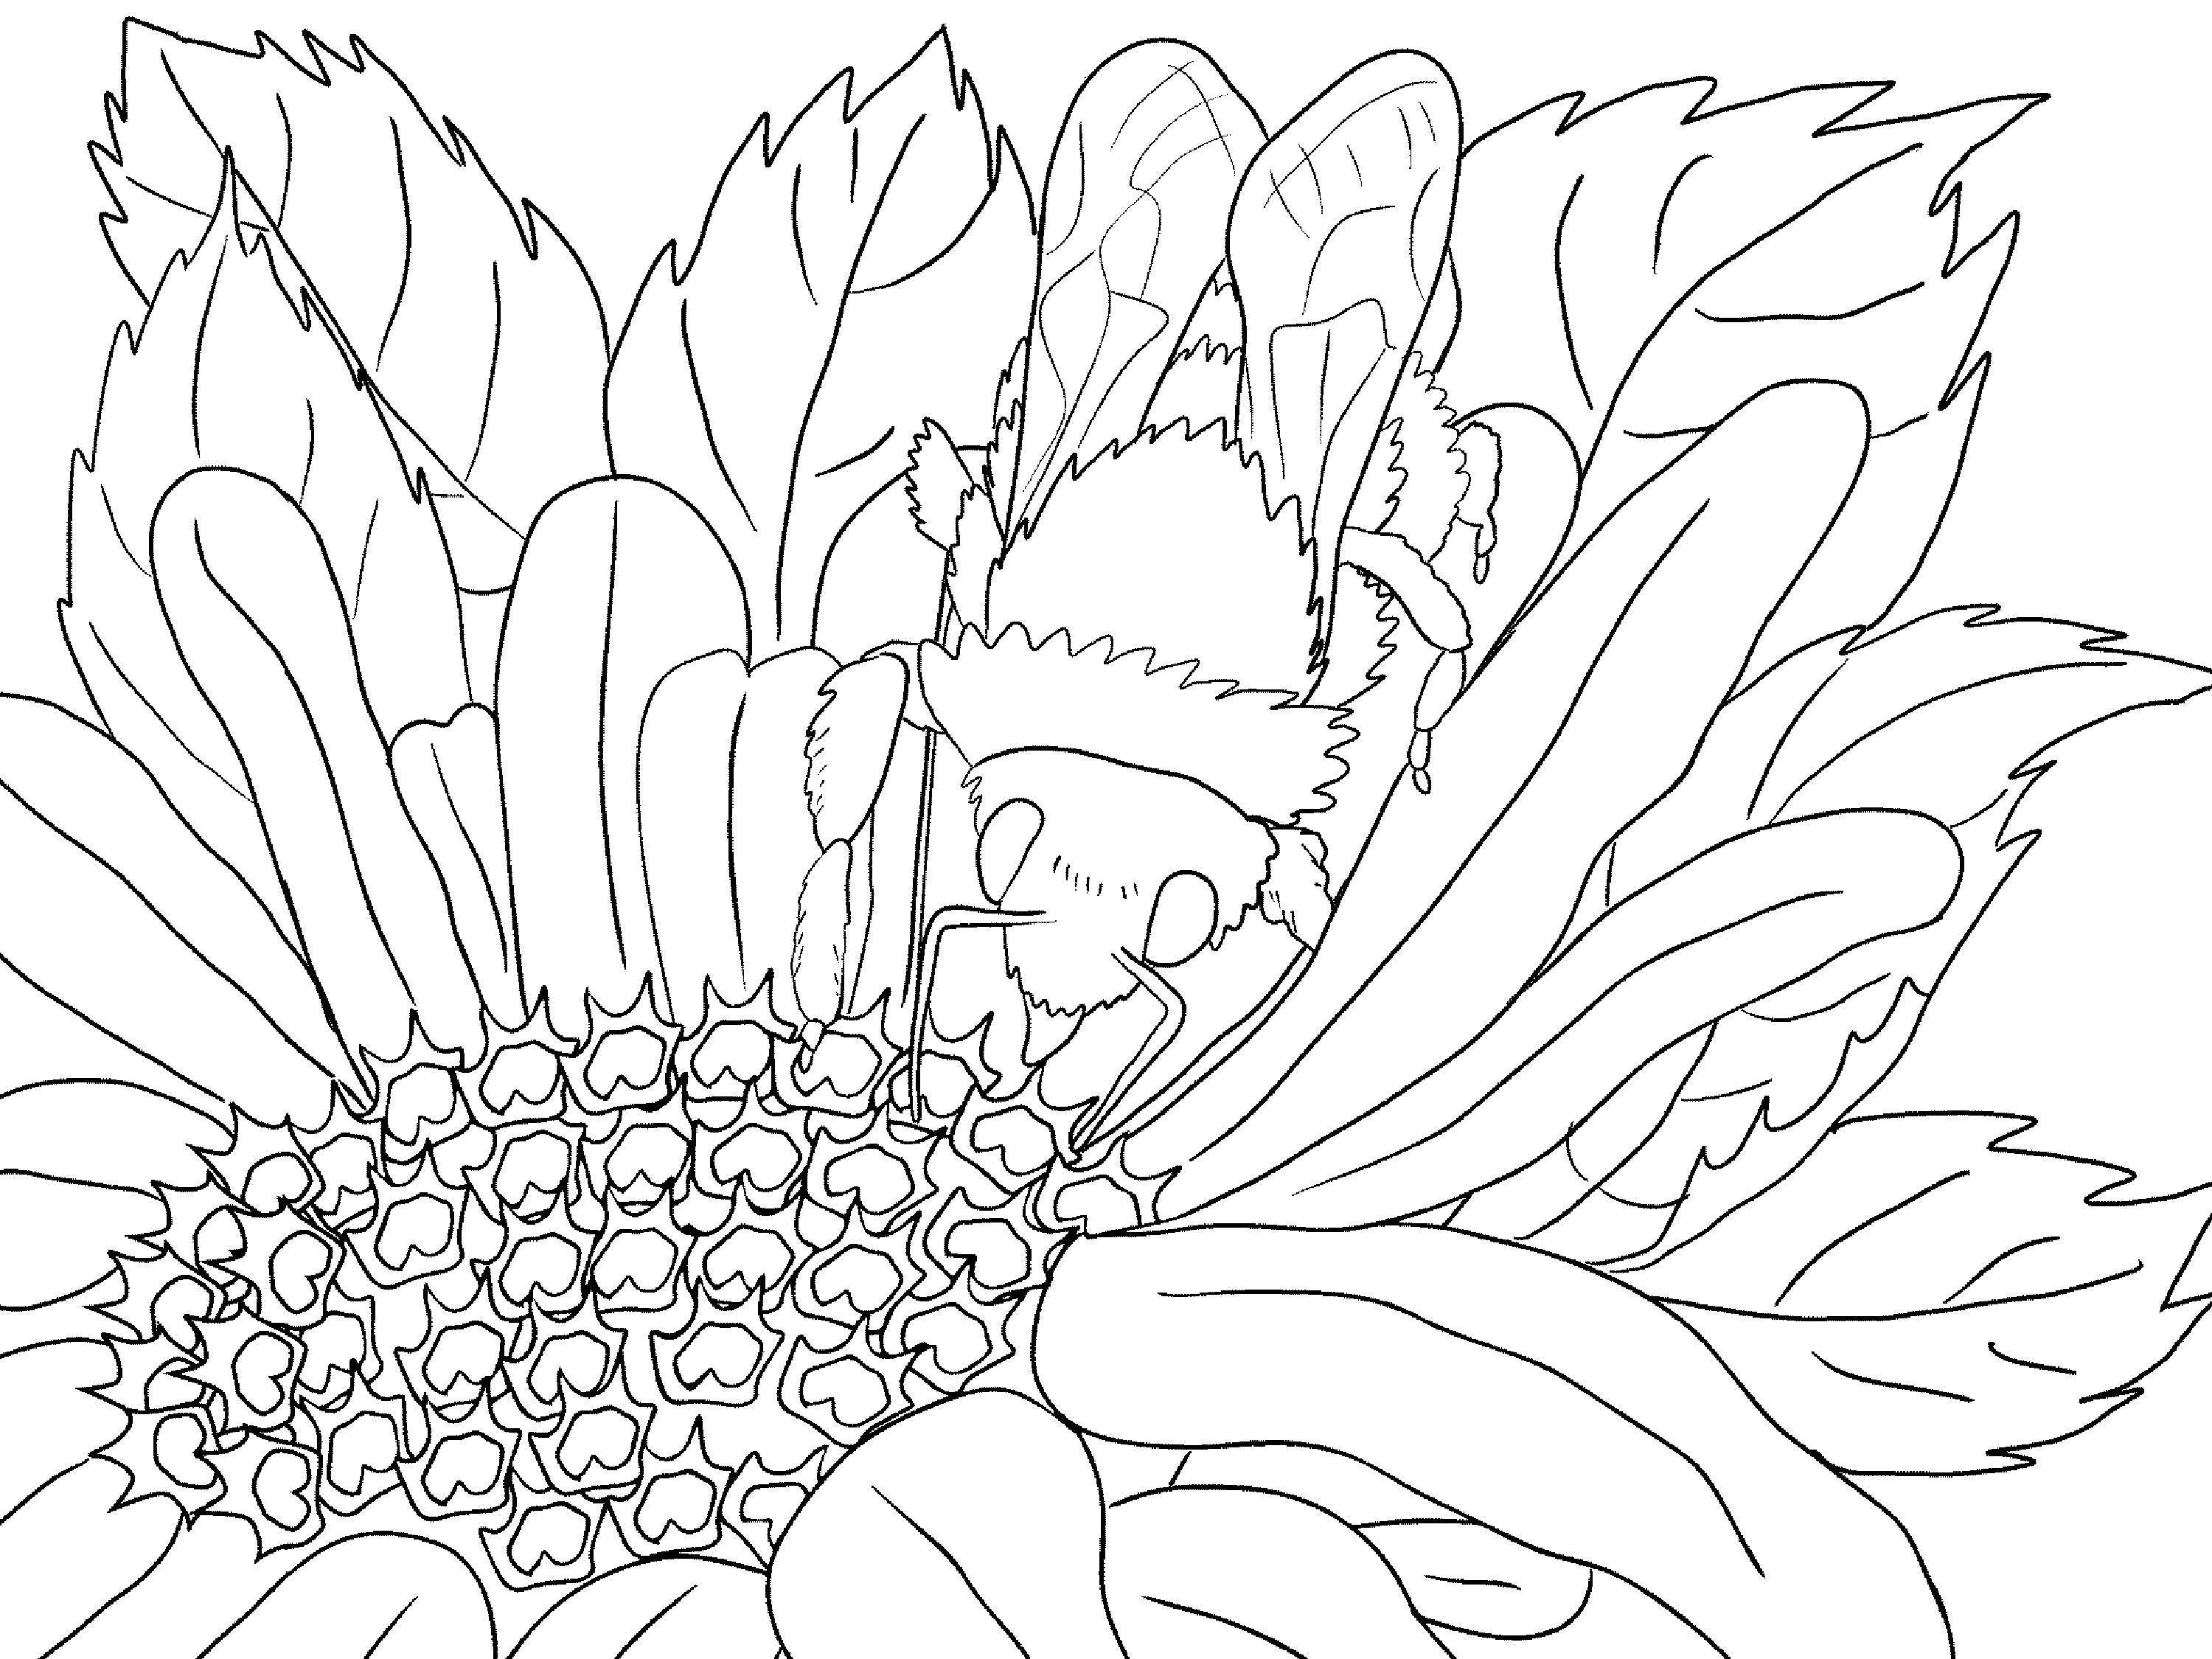 coloring scenery for kids scenery drawing for kids at getdrawings free download for scenery kids coloring